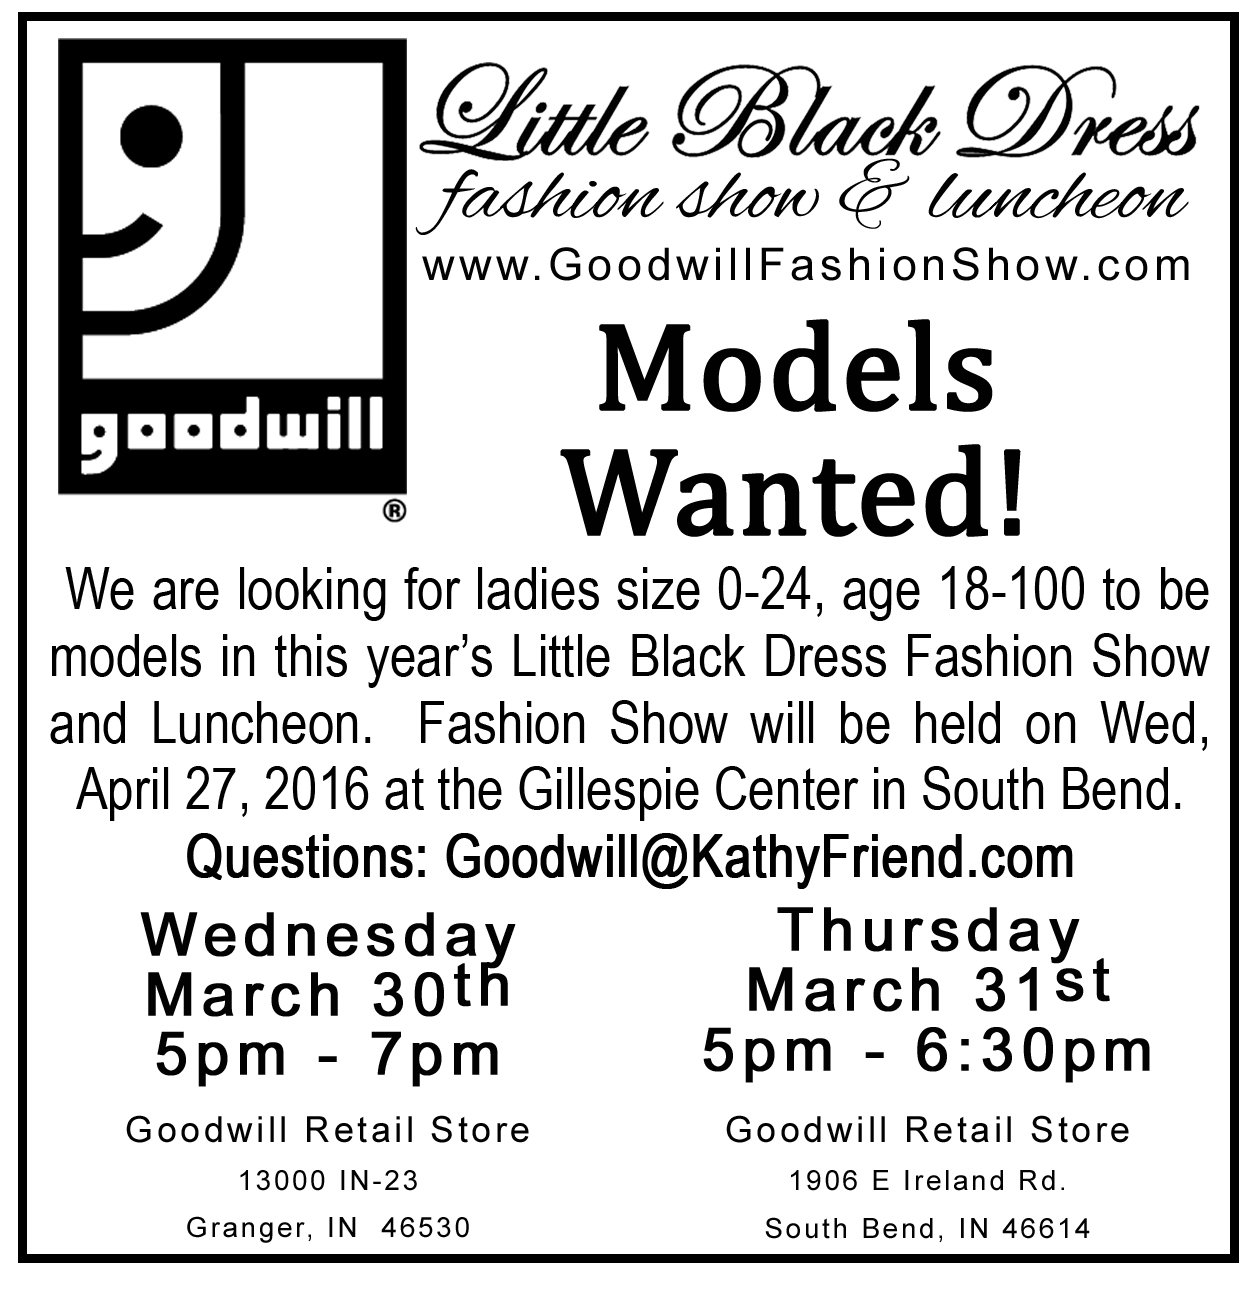 LAST Model Call for South Bend LBD is March 31 - Goodwill